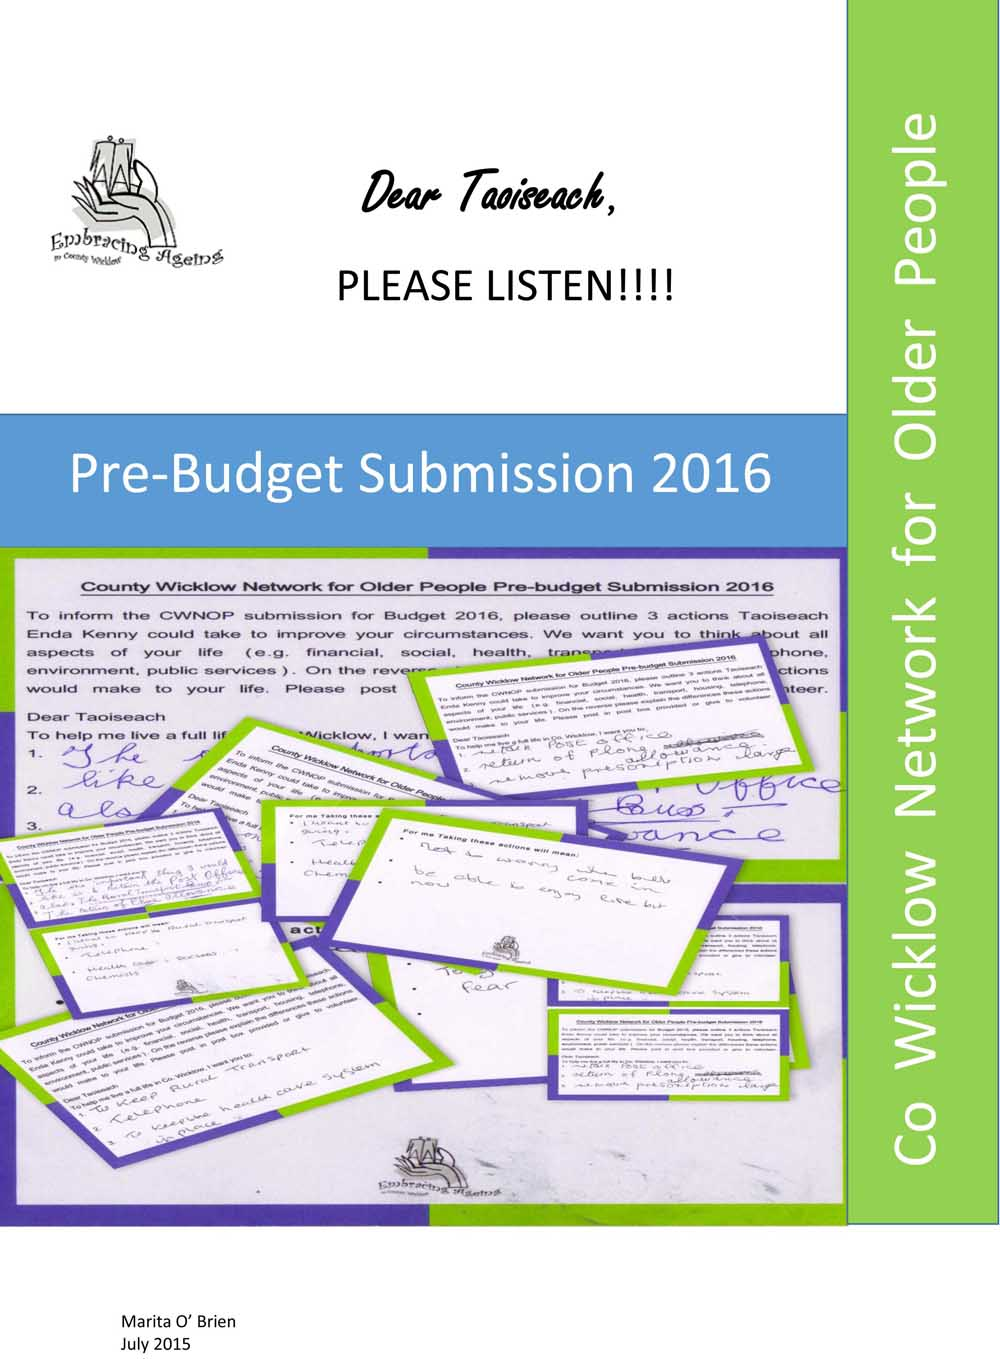 Pre-Budget Submission